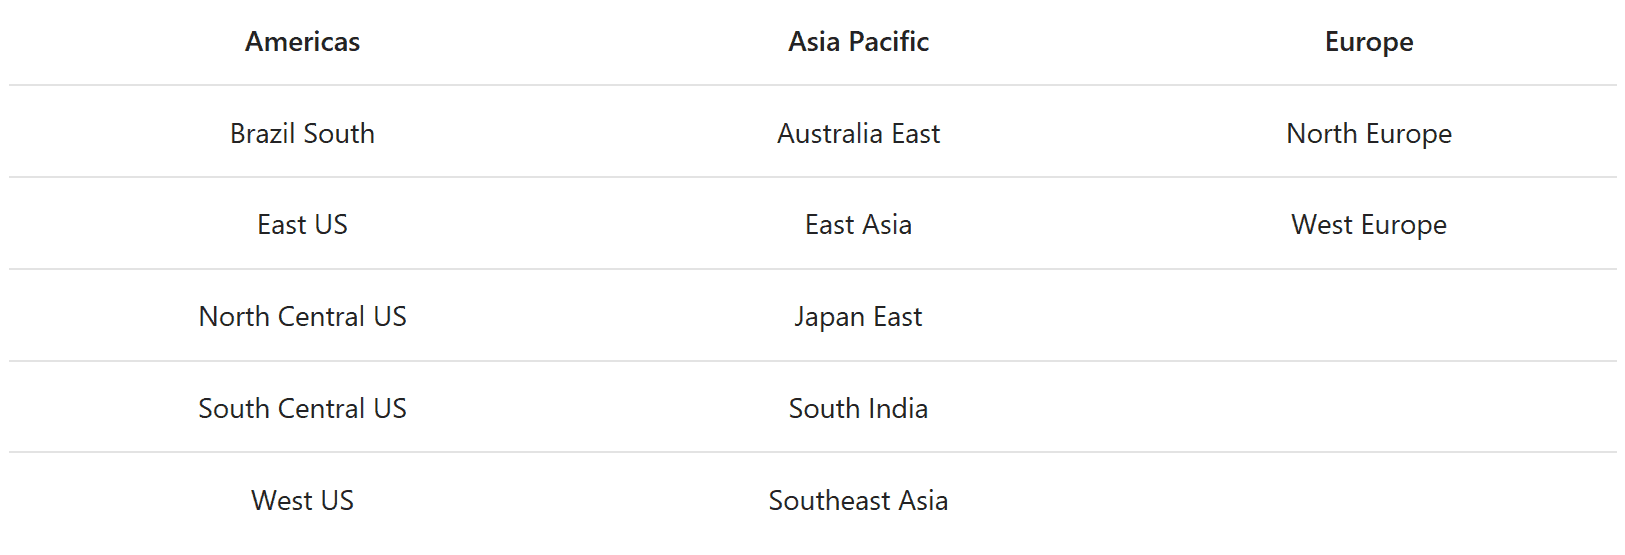 Americas  Brazil South  East US  North Central US  South Central US  West US  Asia Pacific  Australia East  East Asia  Japan East  South India  Southeast Asia  Europe  North Europe  West Europe